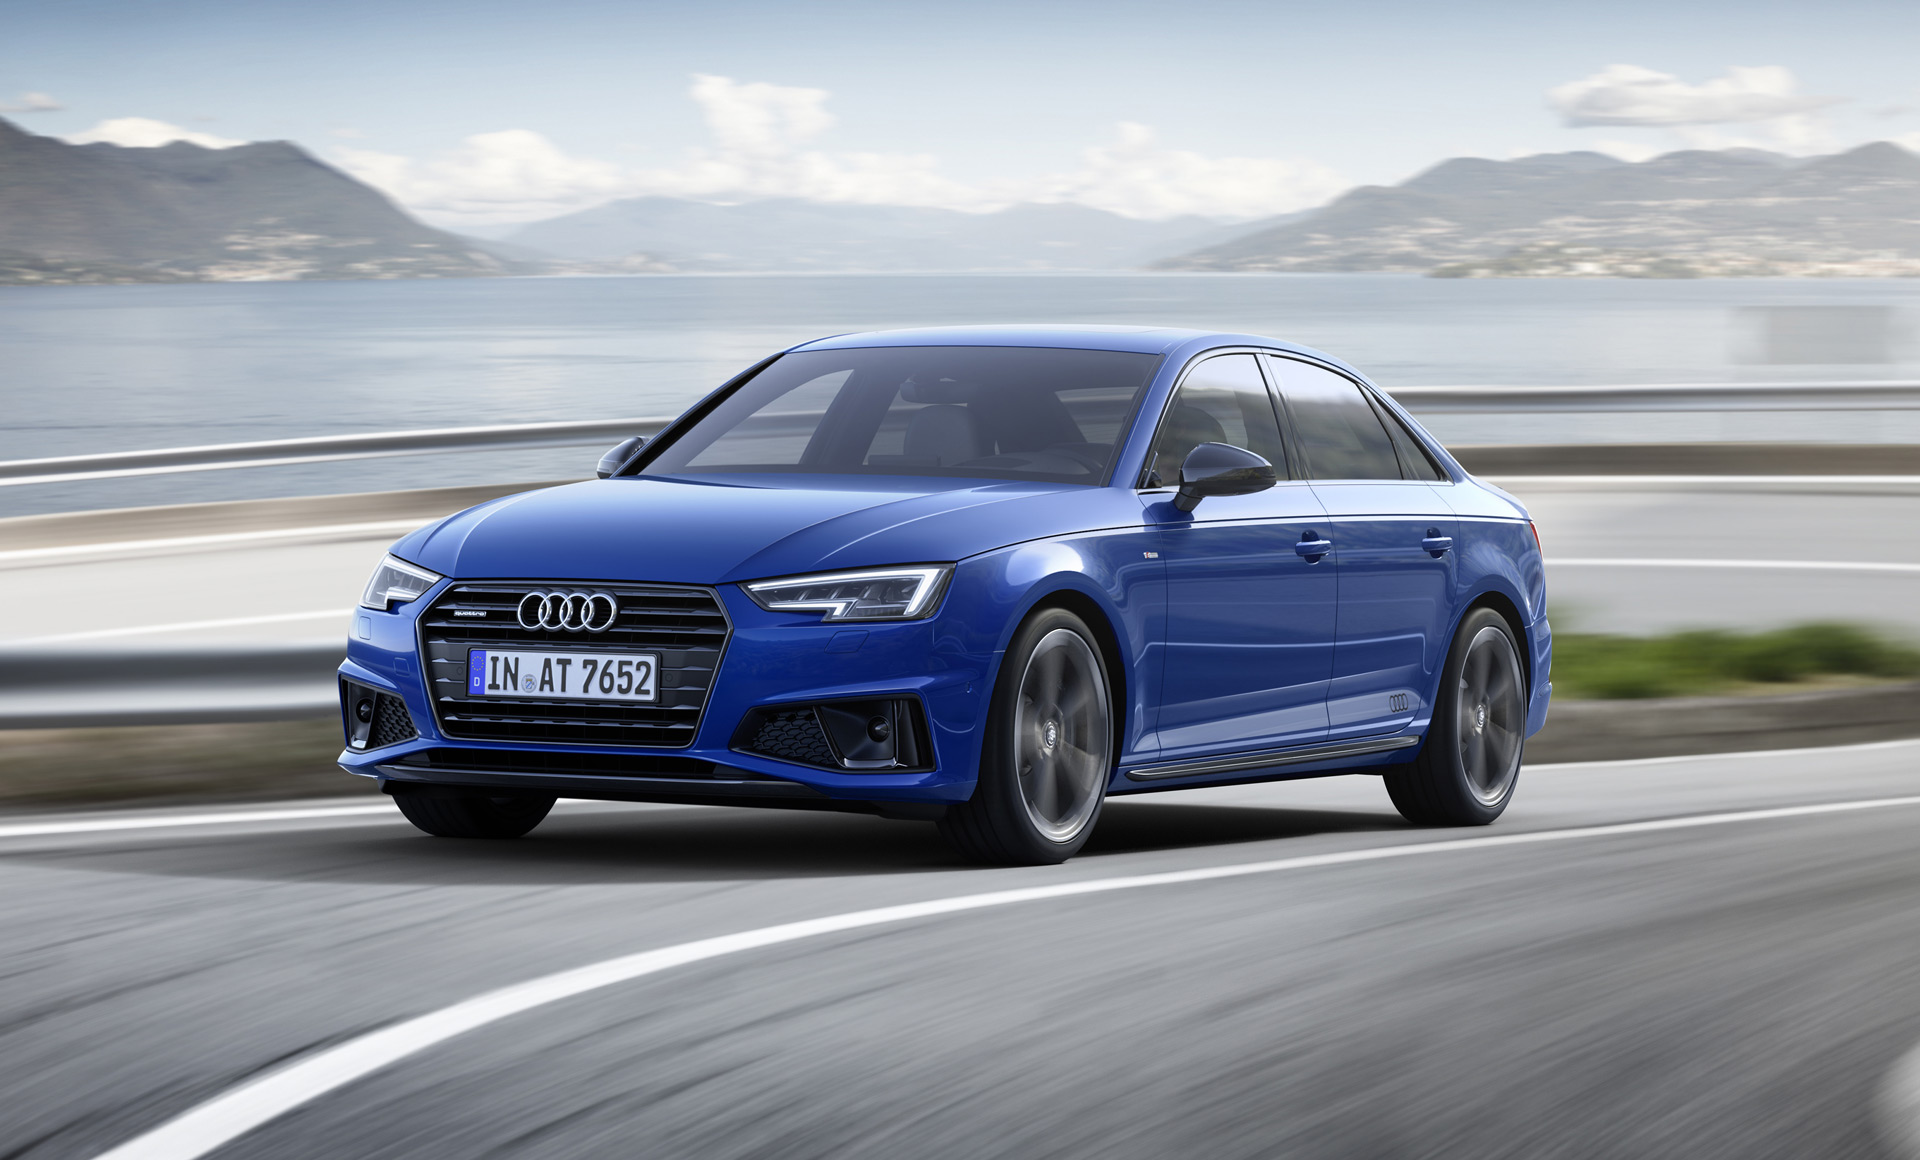 Audi Cars Price In Pakistan Market Rates For Audi Cars